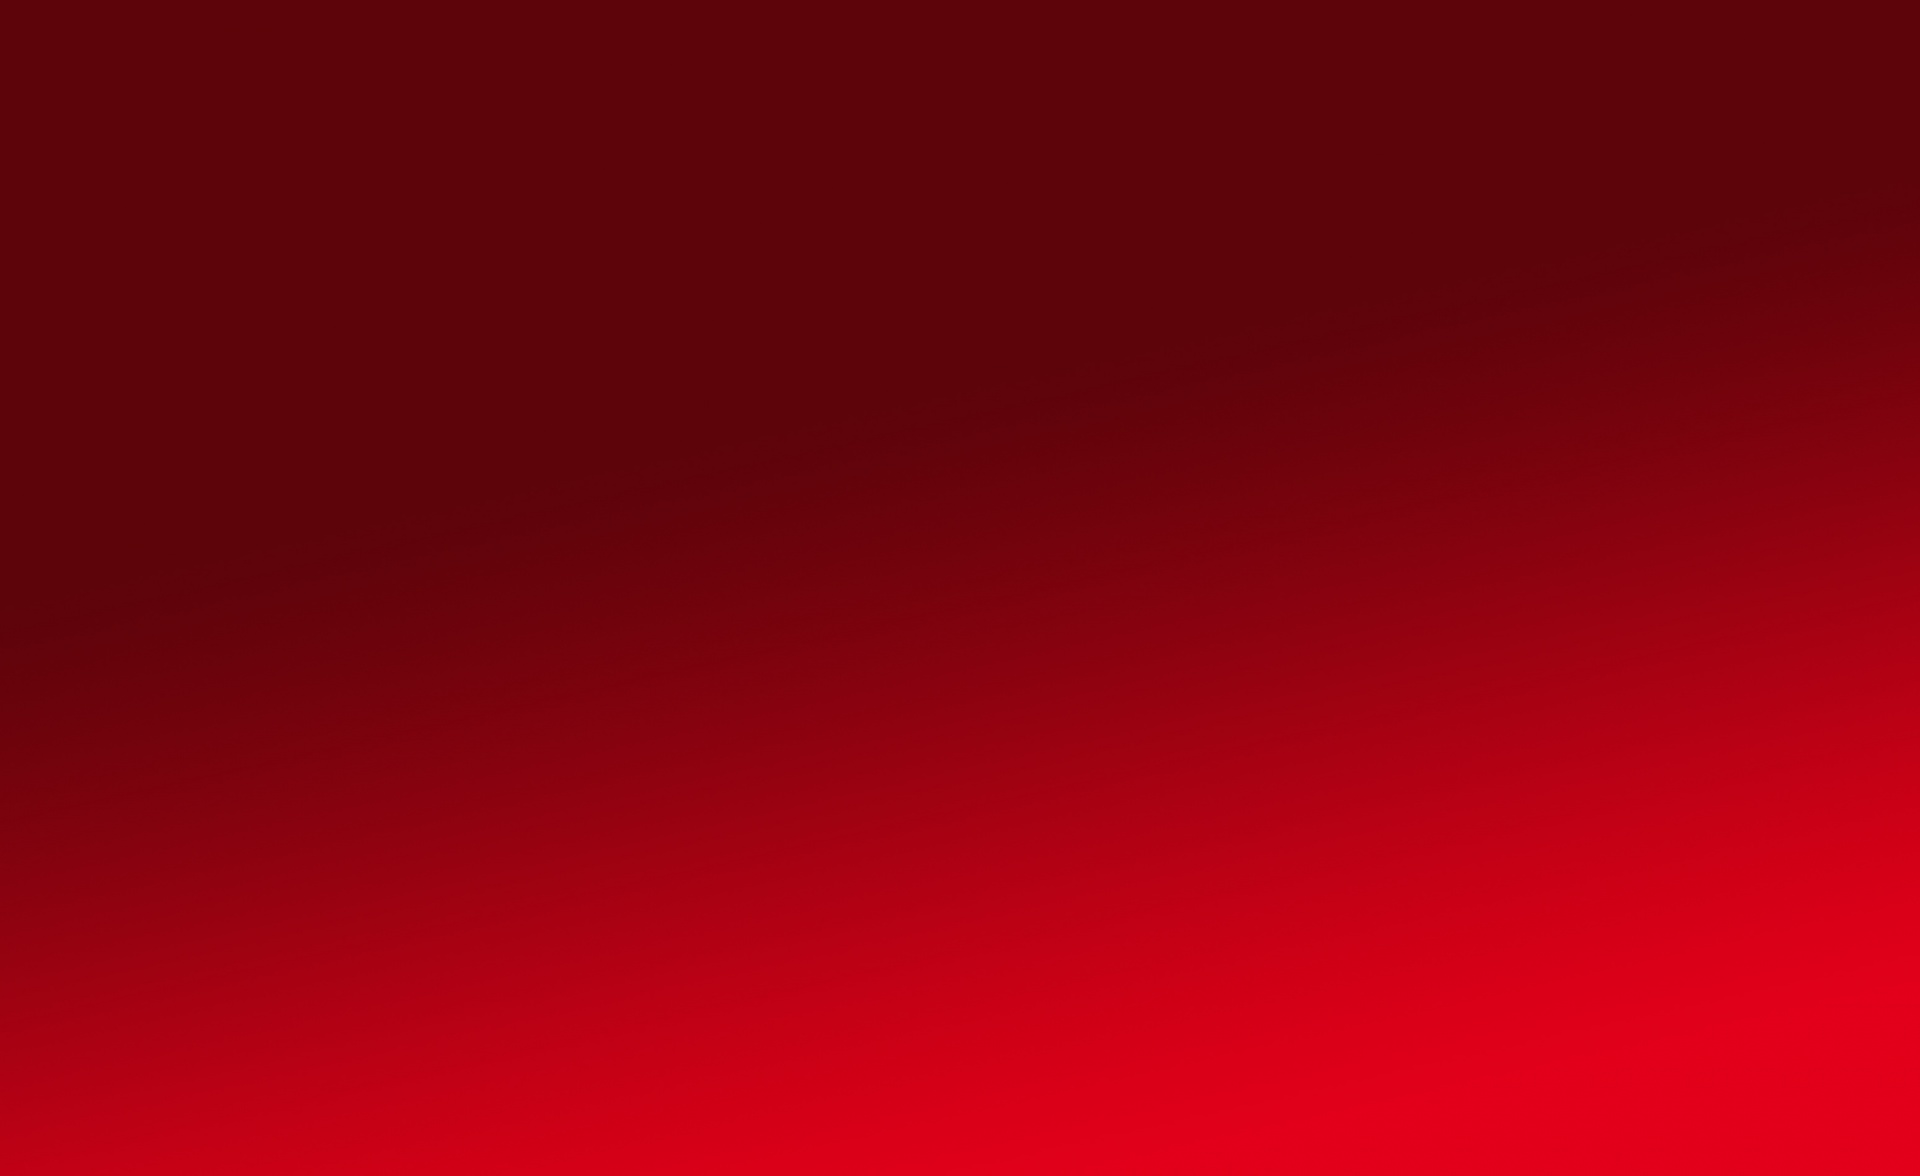 red-gradient-background